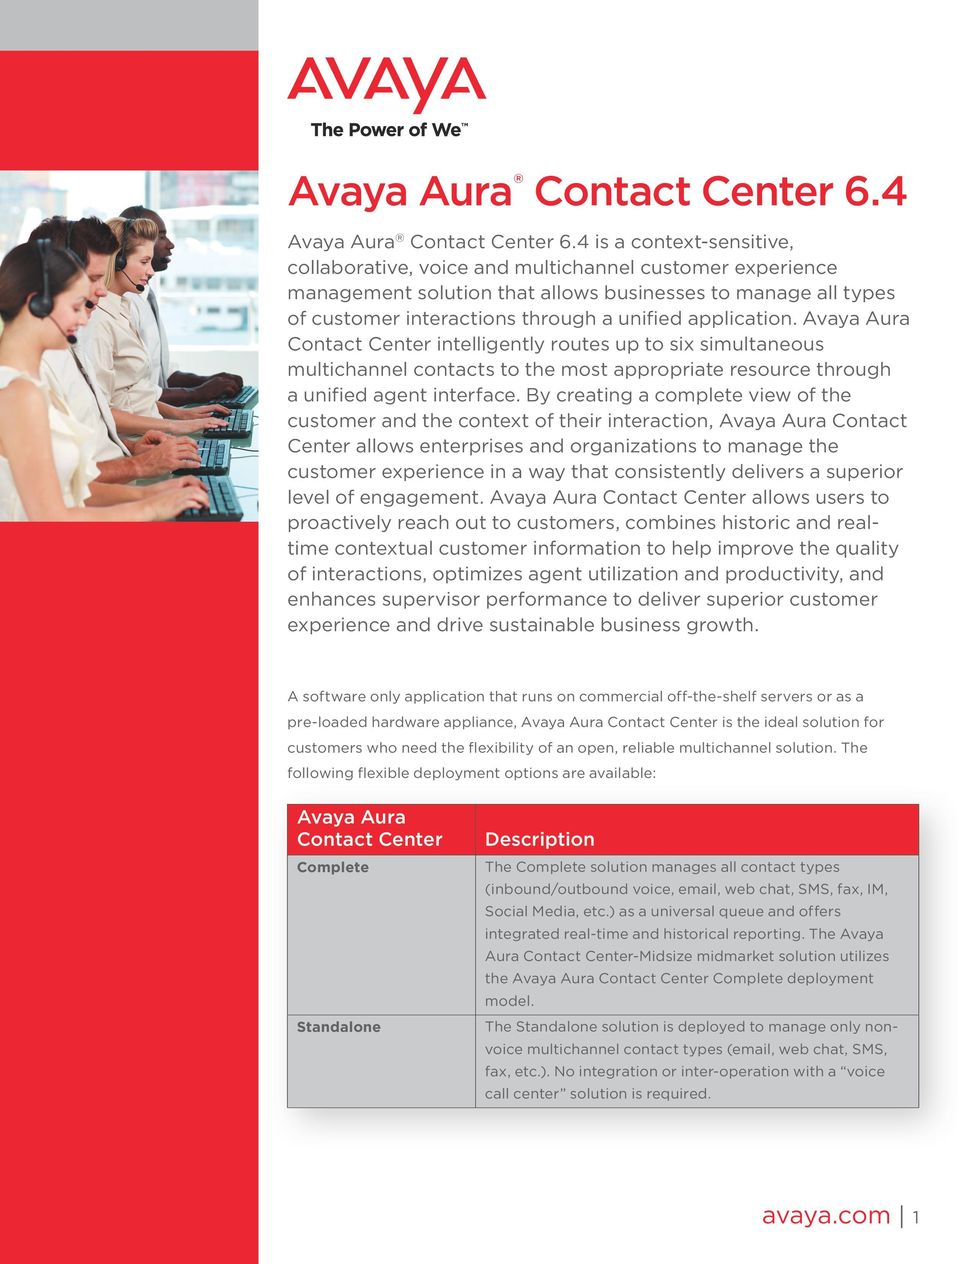 application. Avaya Aura Contact Center intelligently routes up to six simultaneous multichannel contacts to the most appropriate resource through a unified agent interface.